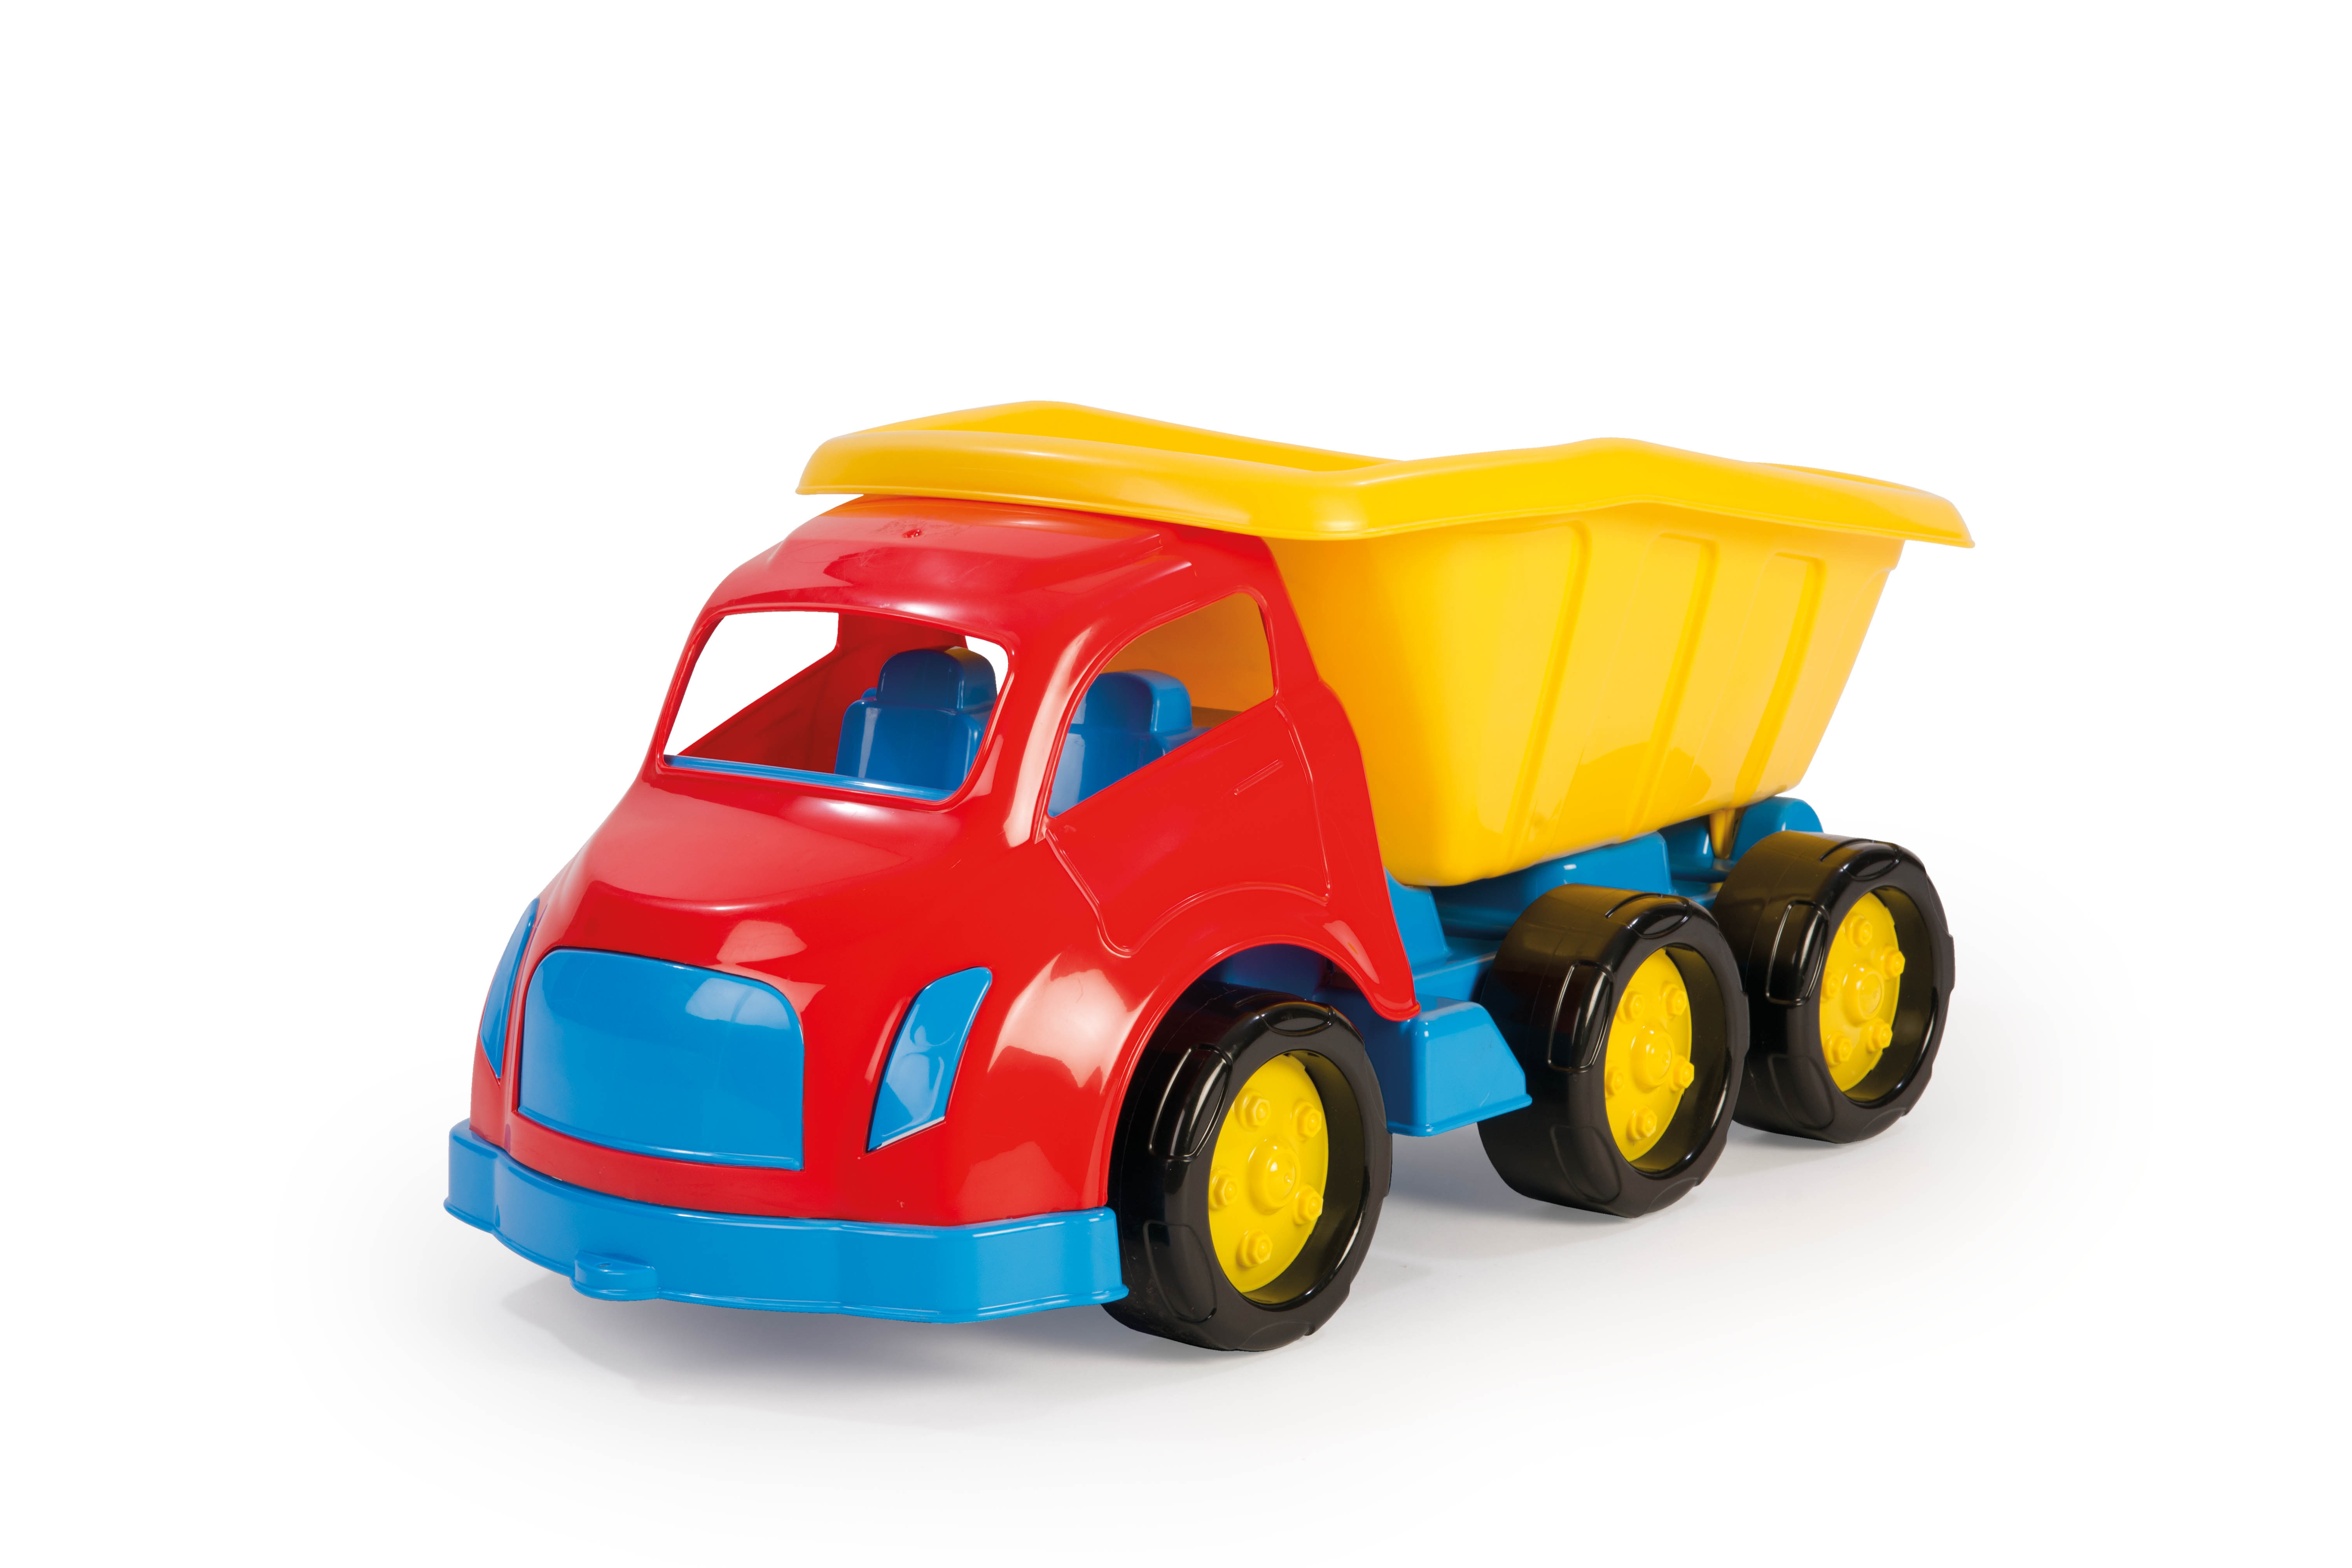 maxi large kids toy dump work construction sandpit tipper 6 wheels